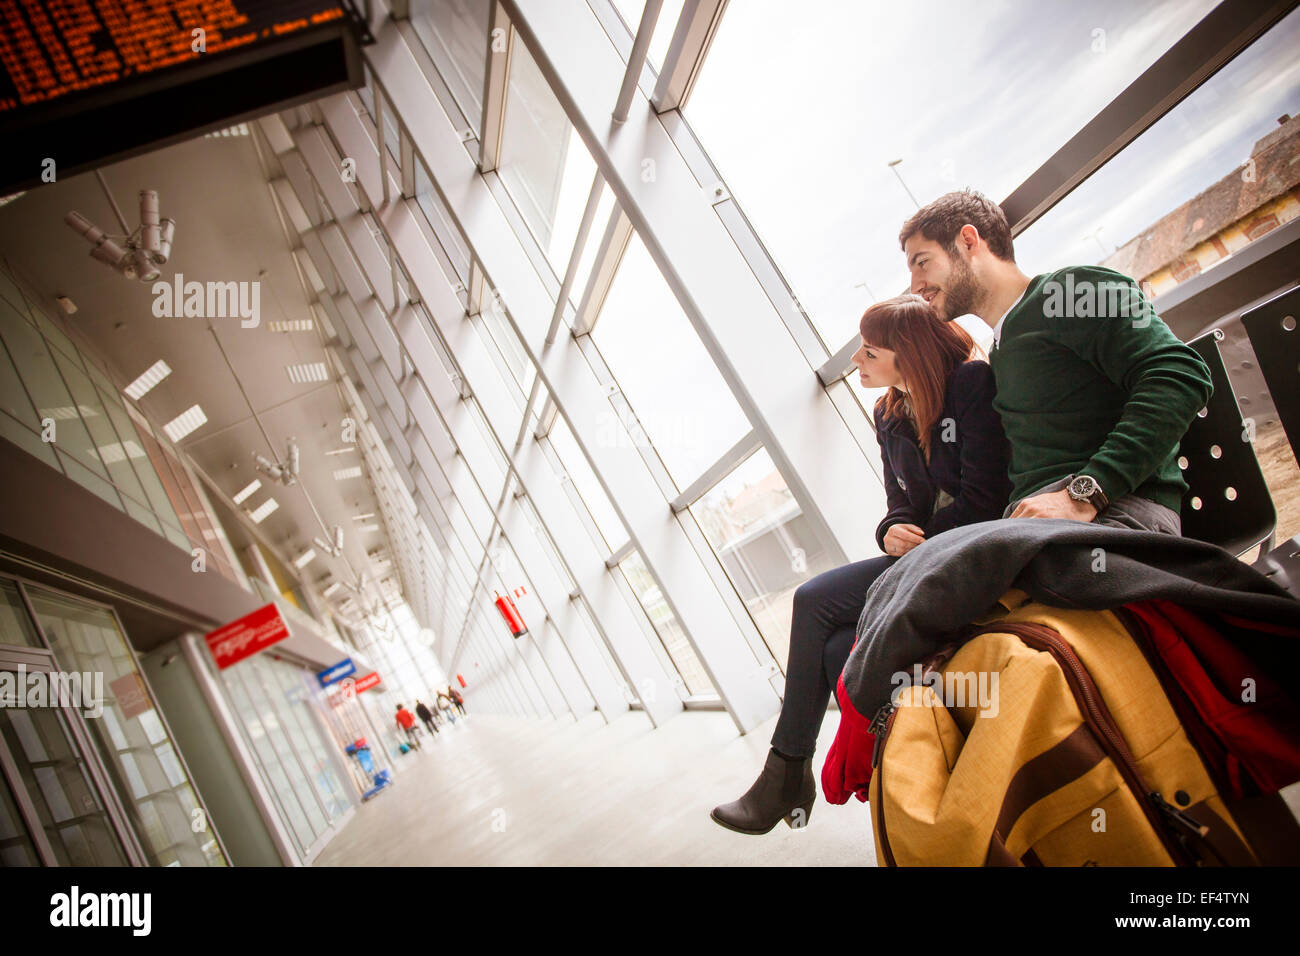 Young couple waiting in airport building - Stock Image